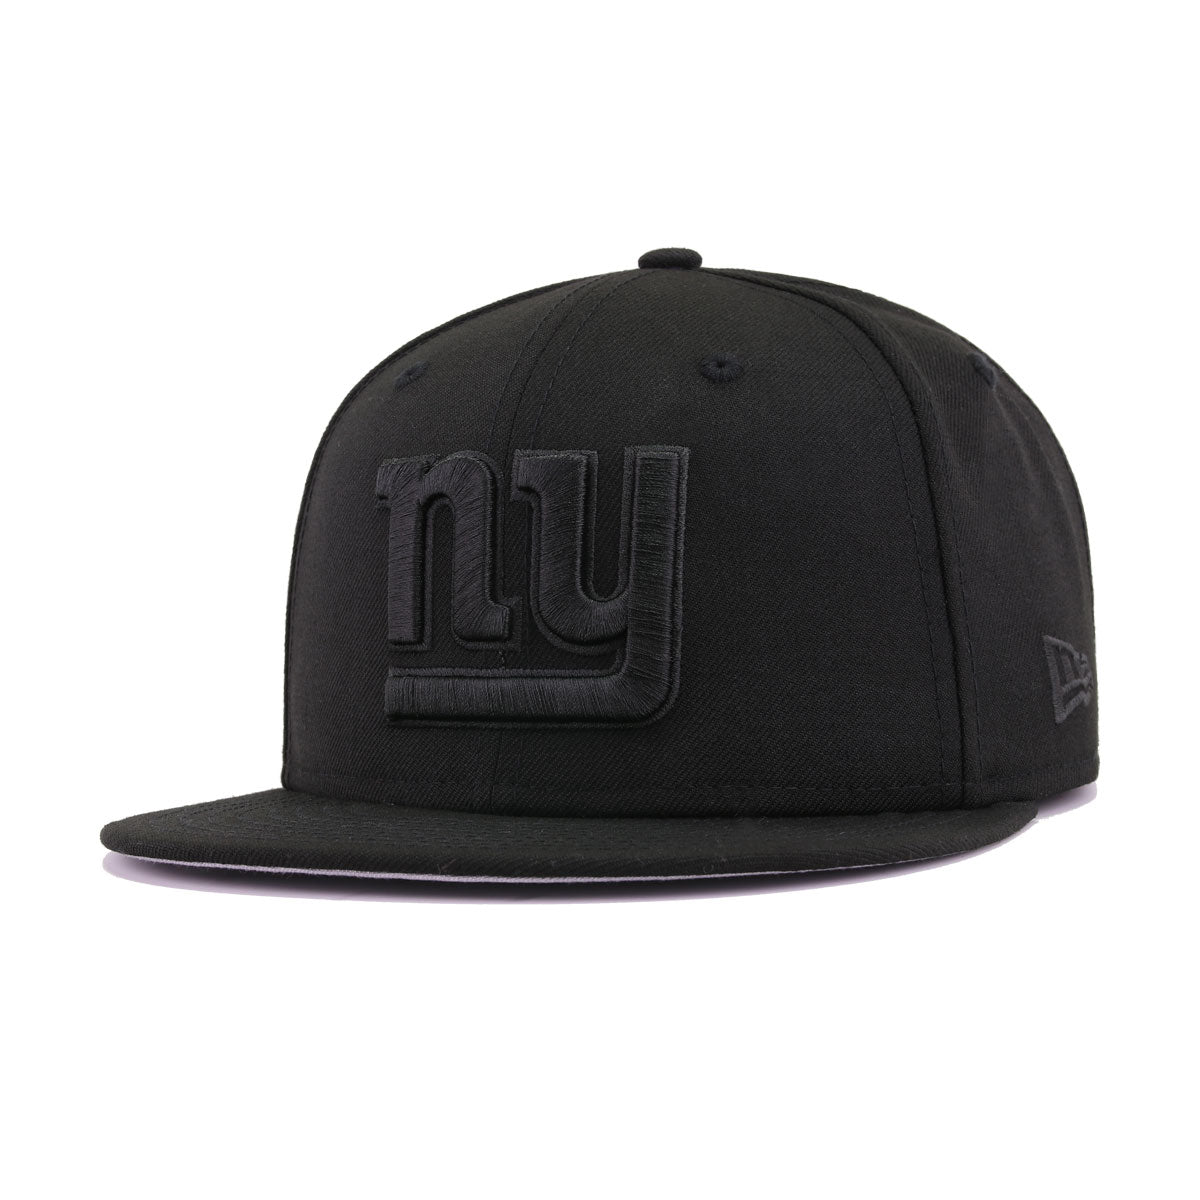 58a587ee New York Giants Black on Black New Era 9Fifty Snapback